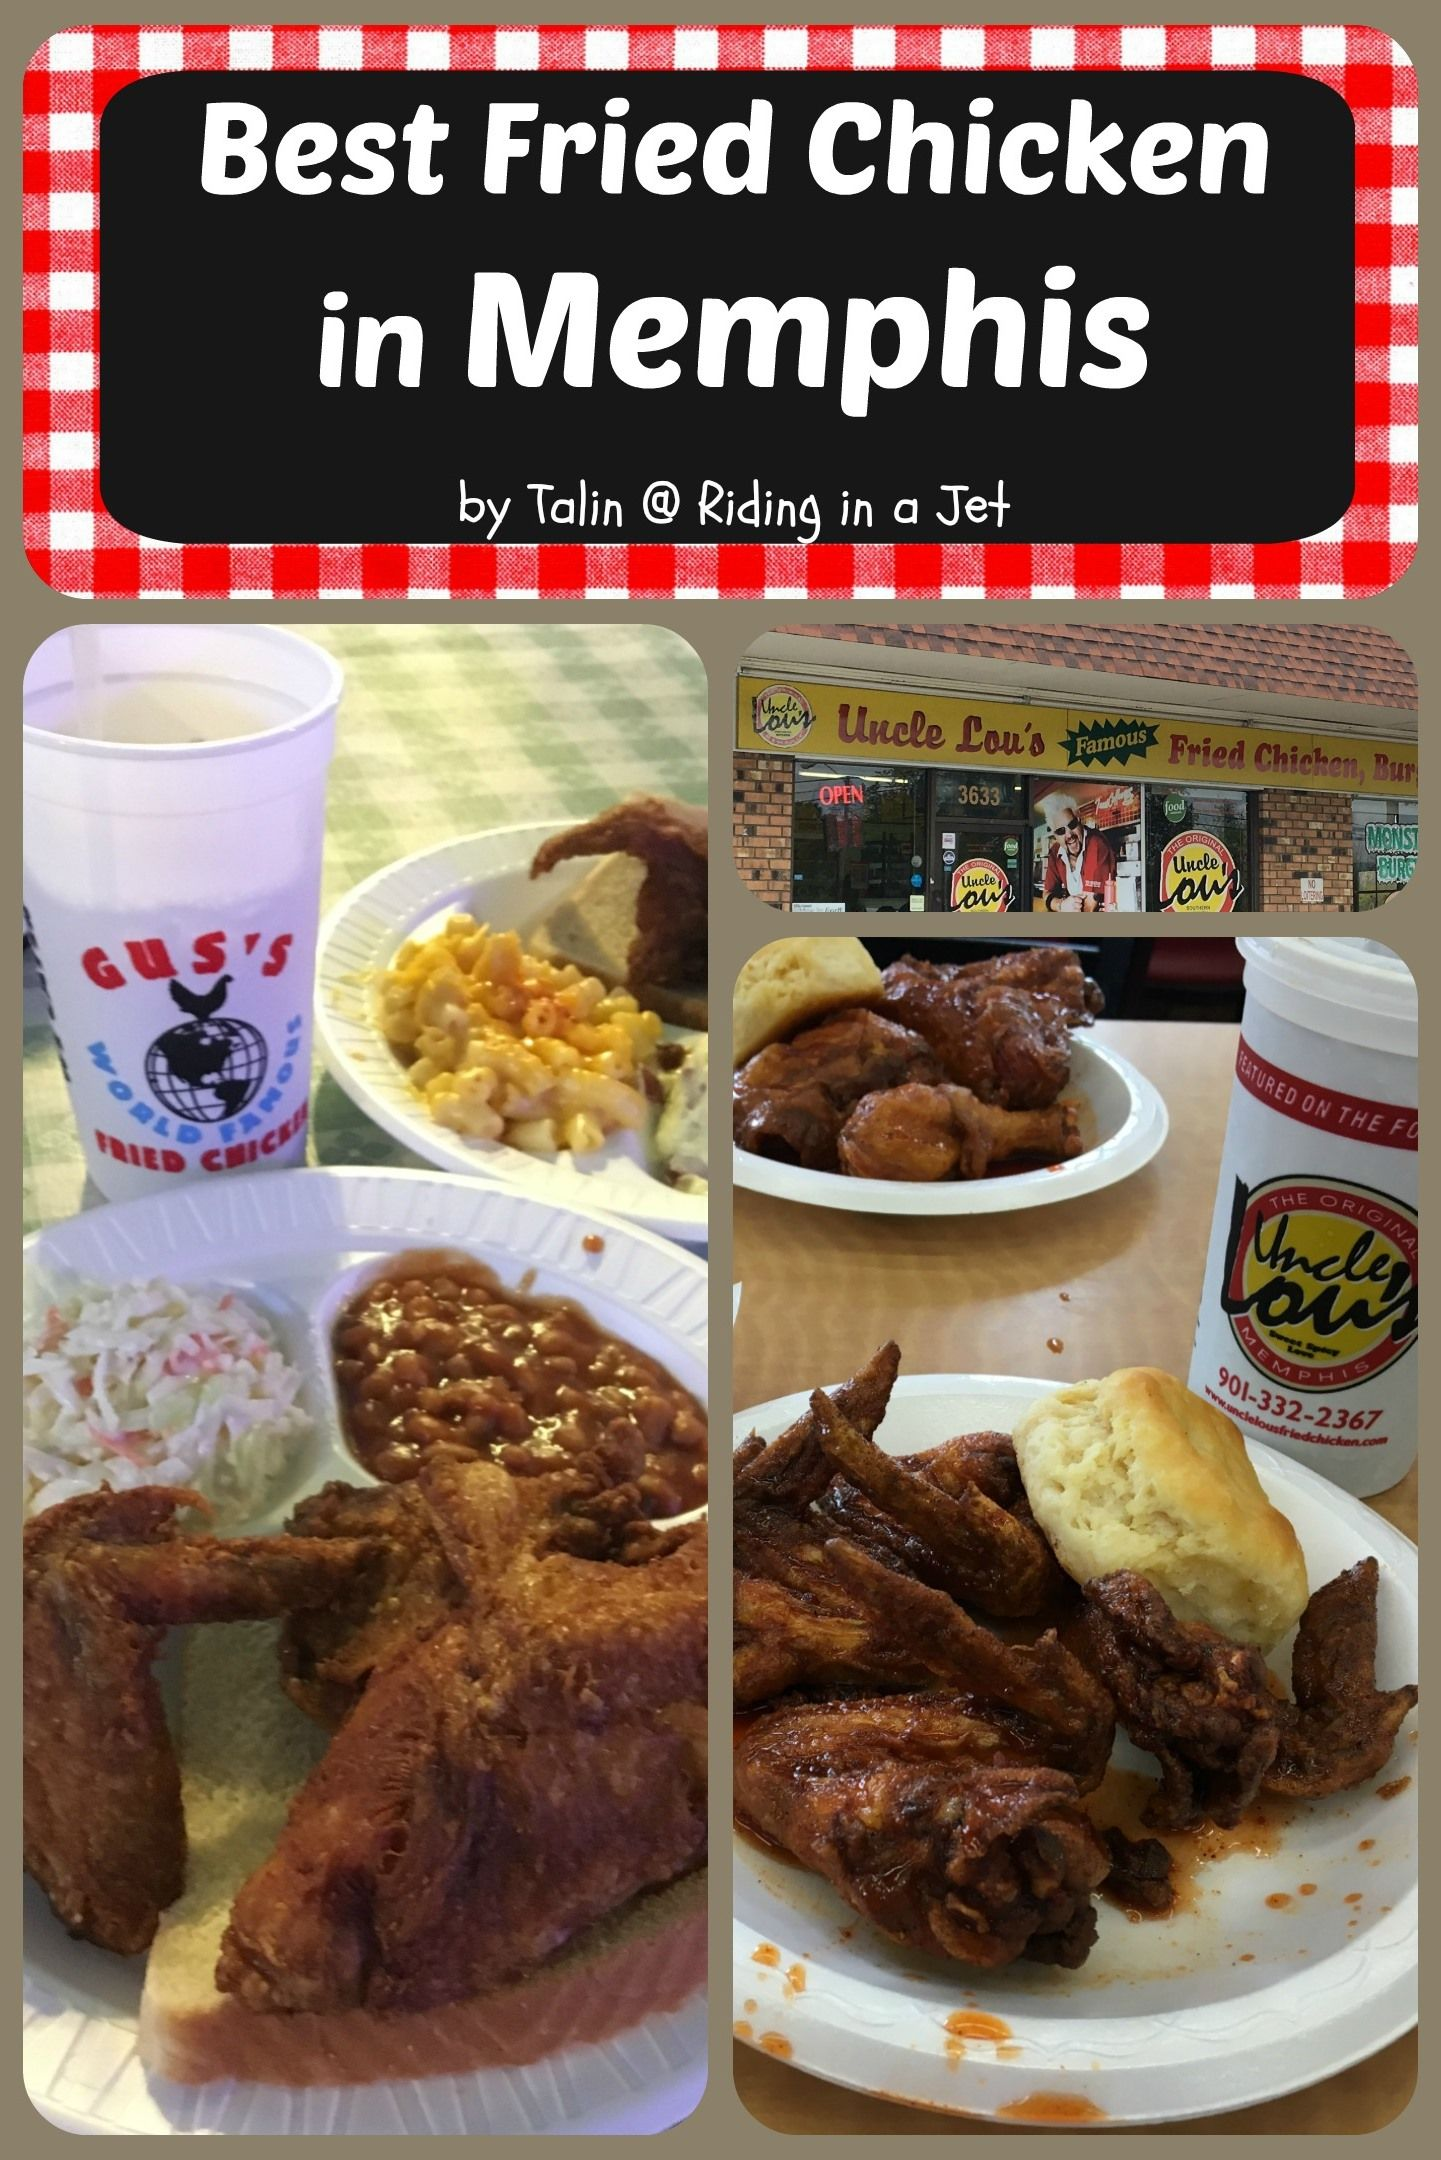 best fried chicken in memphis uncle lou s or gus s culinary travel travel food foodie travel best fried chicken in memphis uncle